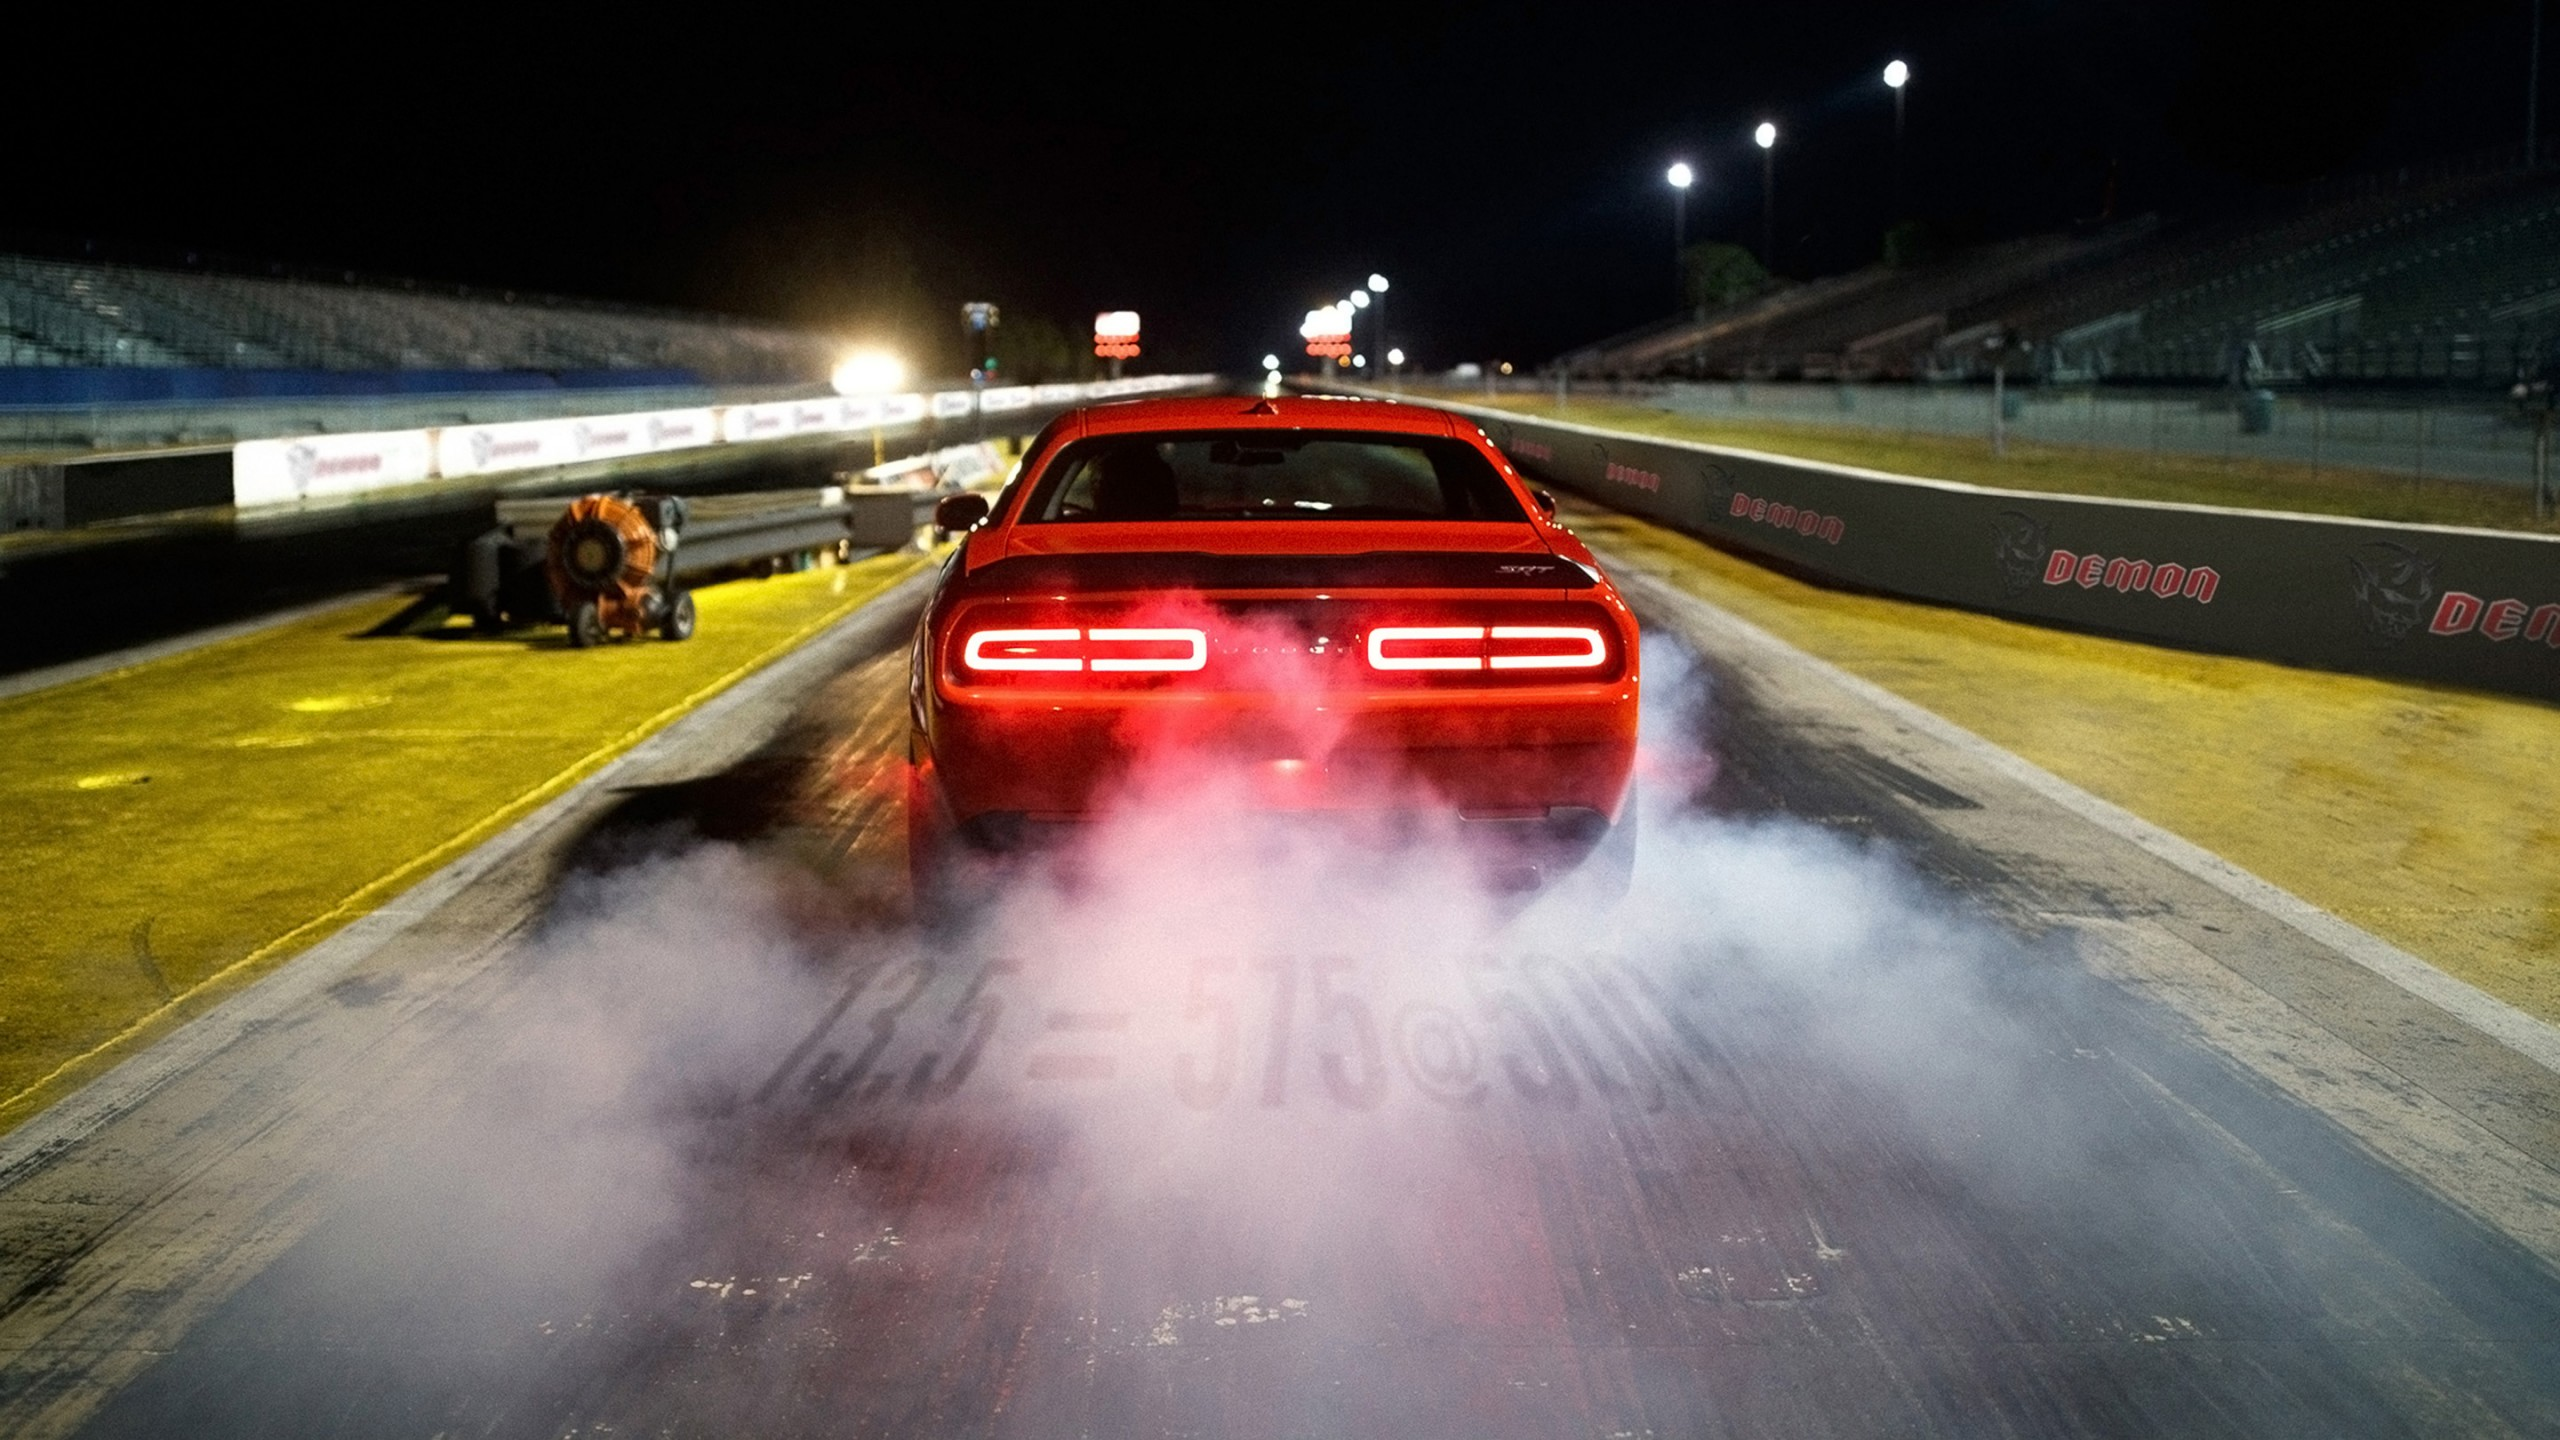 2018 Dodge Challenger Srt Demon On Race Track Wallpaper